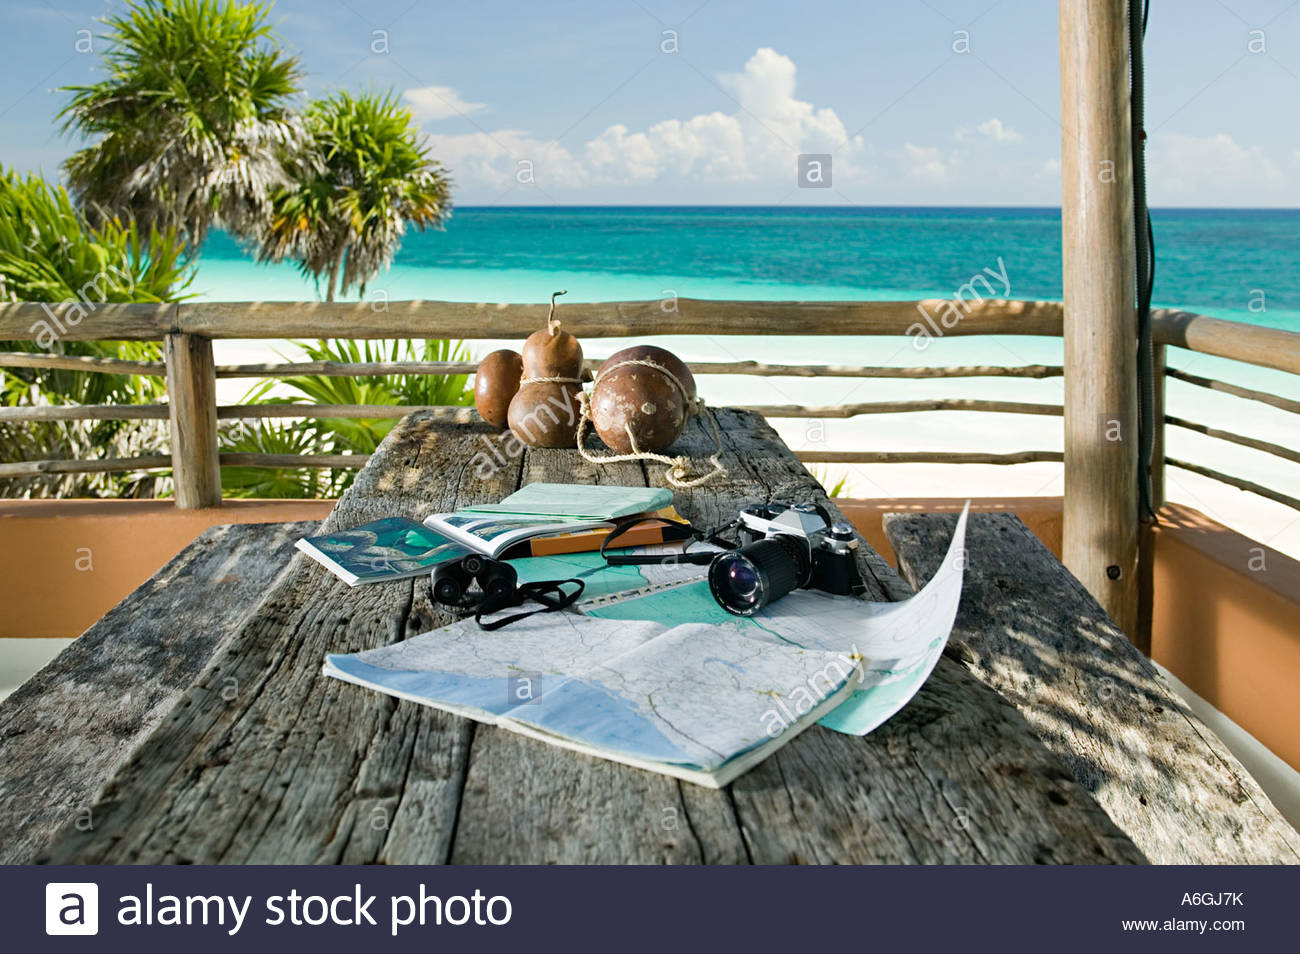 Equipment on a table in paradise - Stock Image